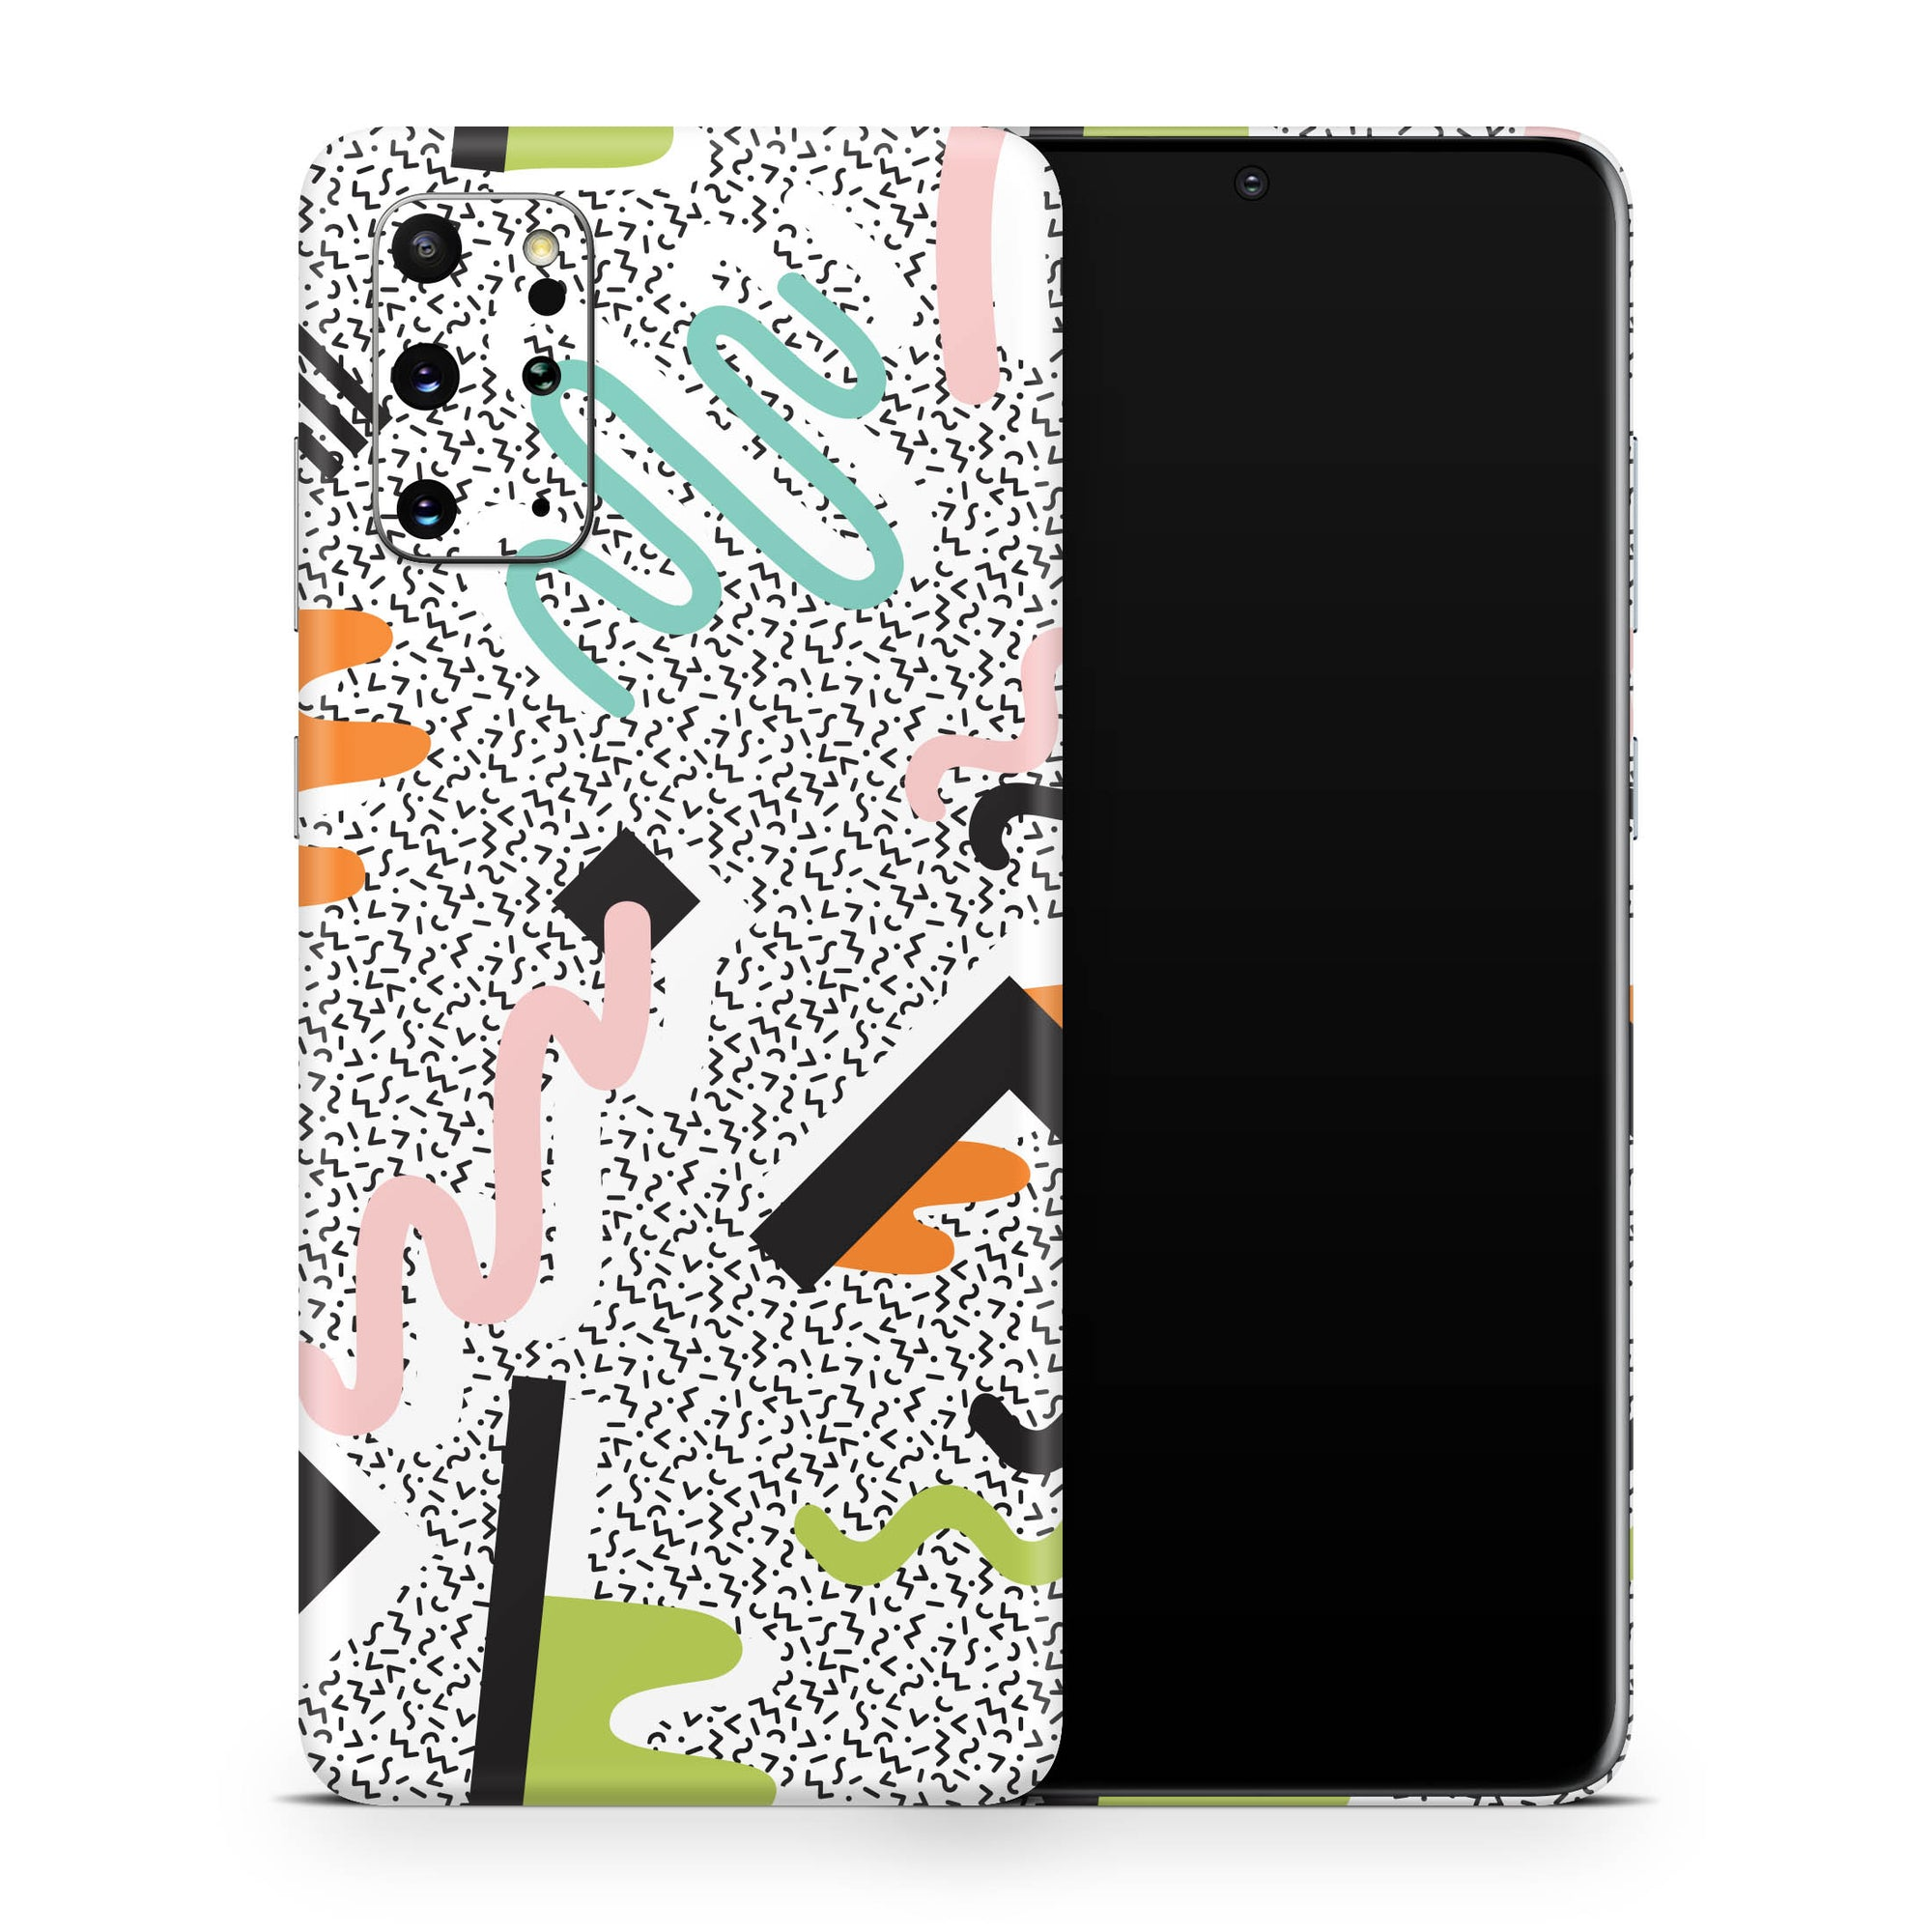 True Memphis Galaxy S20 Ultra Skin + Case-Uniqfind